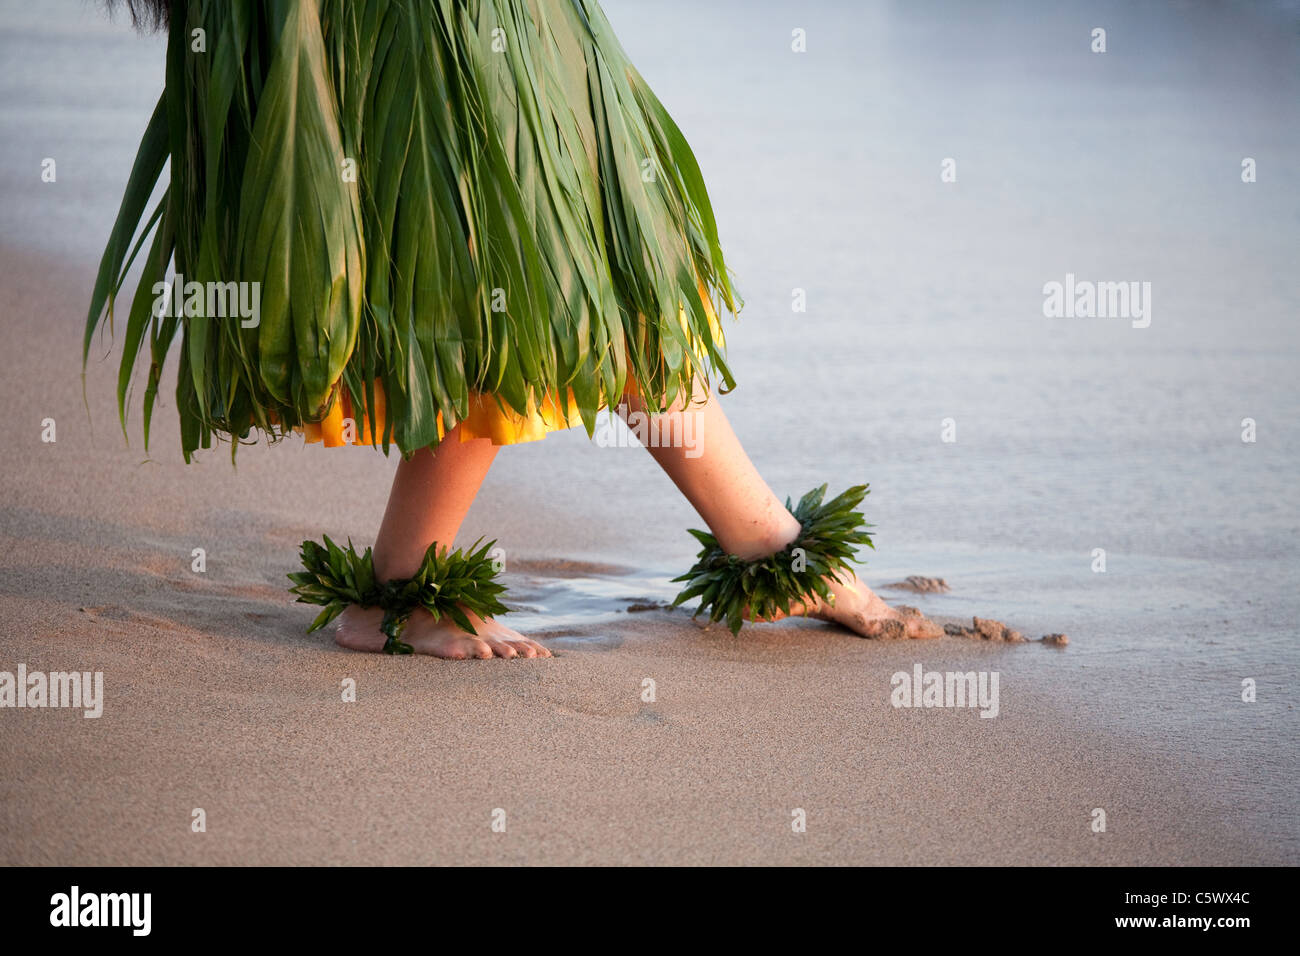 Hula dancer dancing on beach in Maui Hawaii slight soft focus created by movement - Stock Image